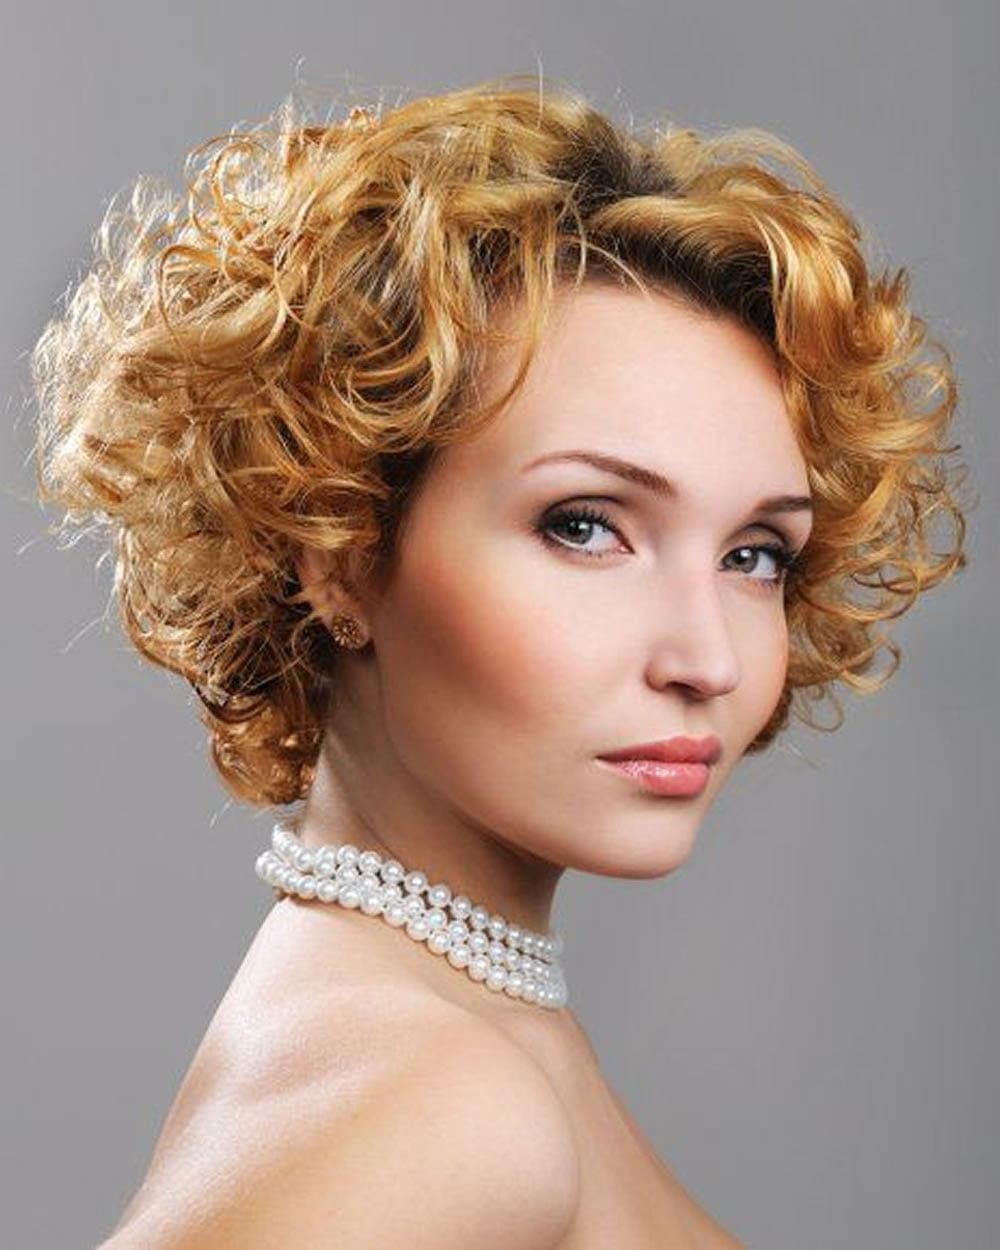 2018 Permed Hairstyles For Short Hair Best 32 Curly